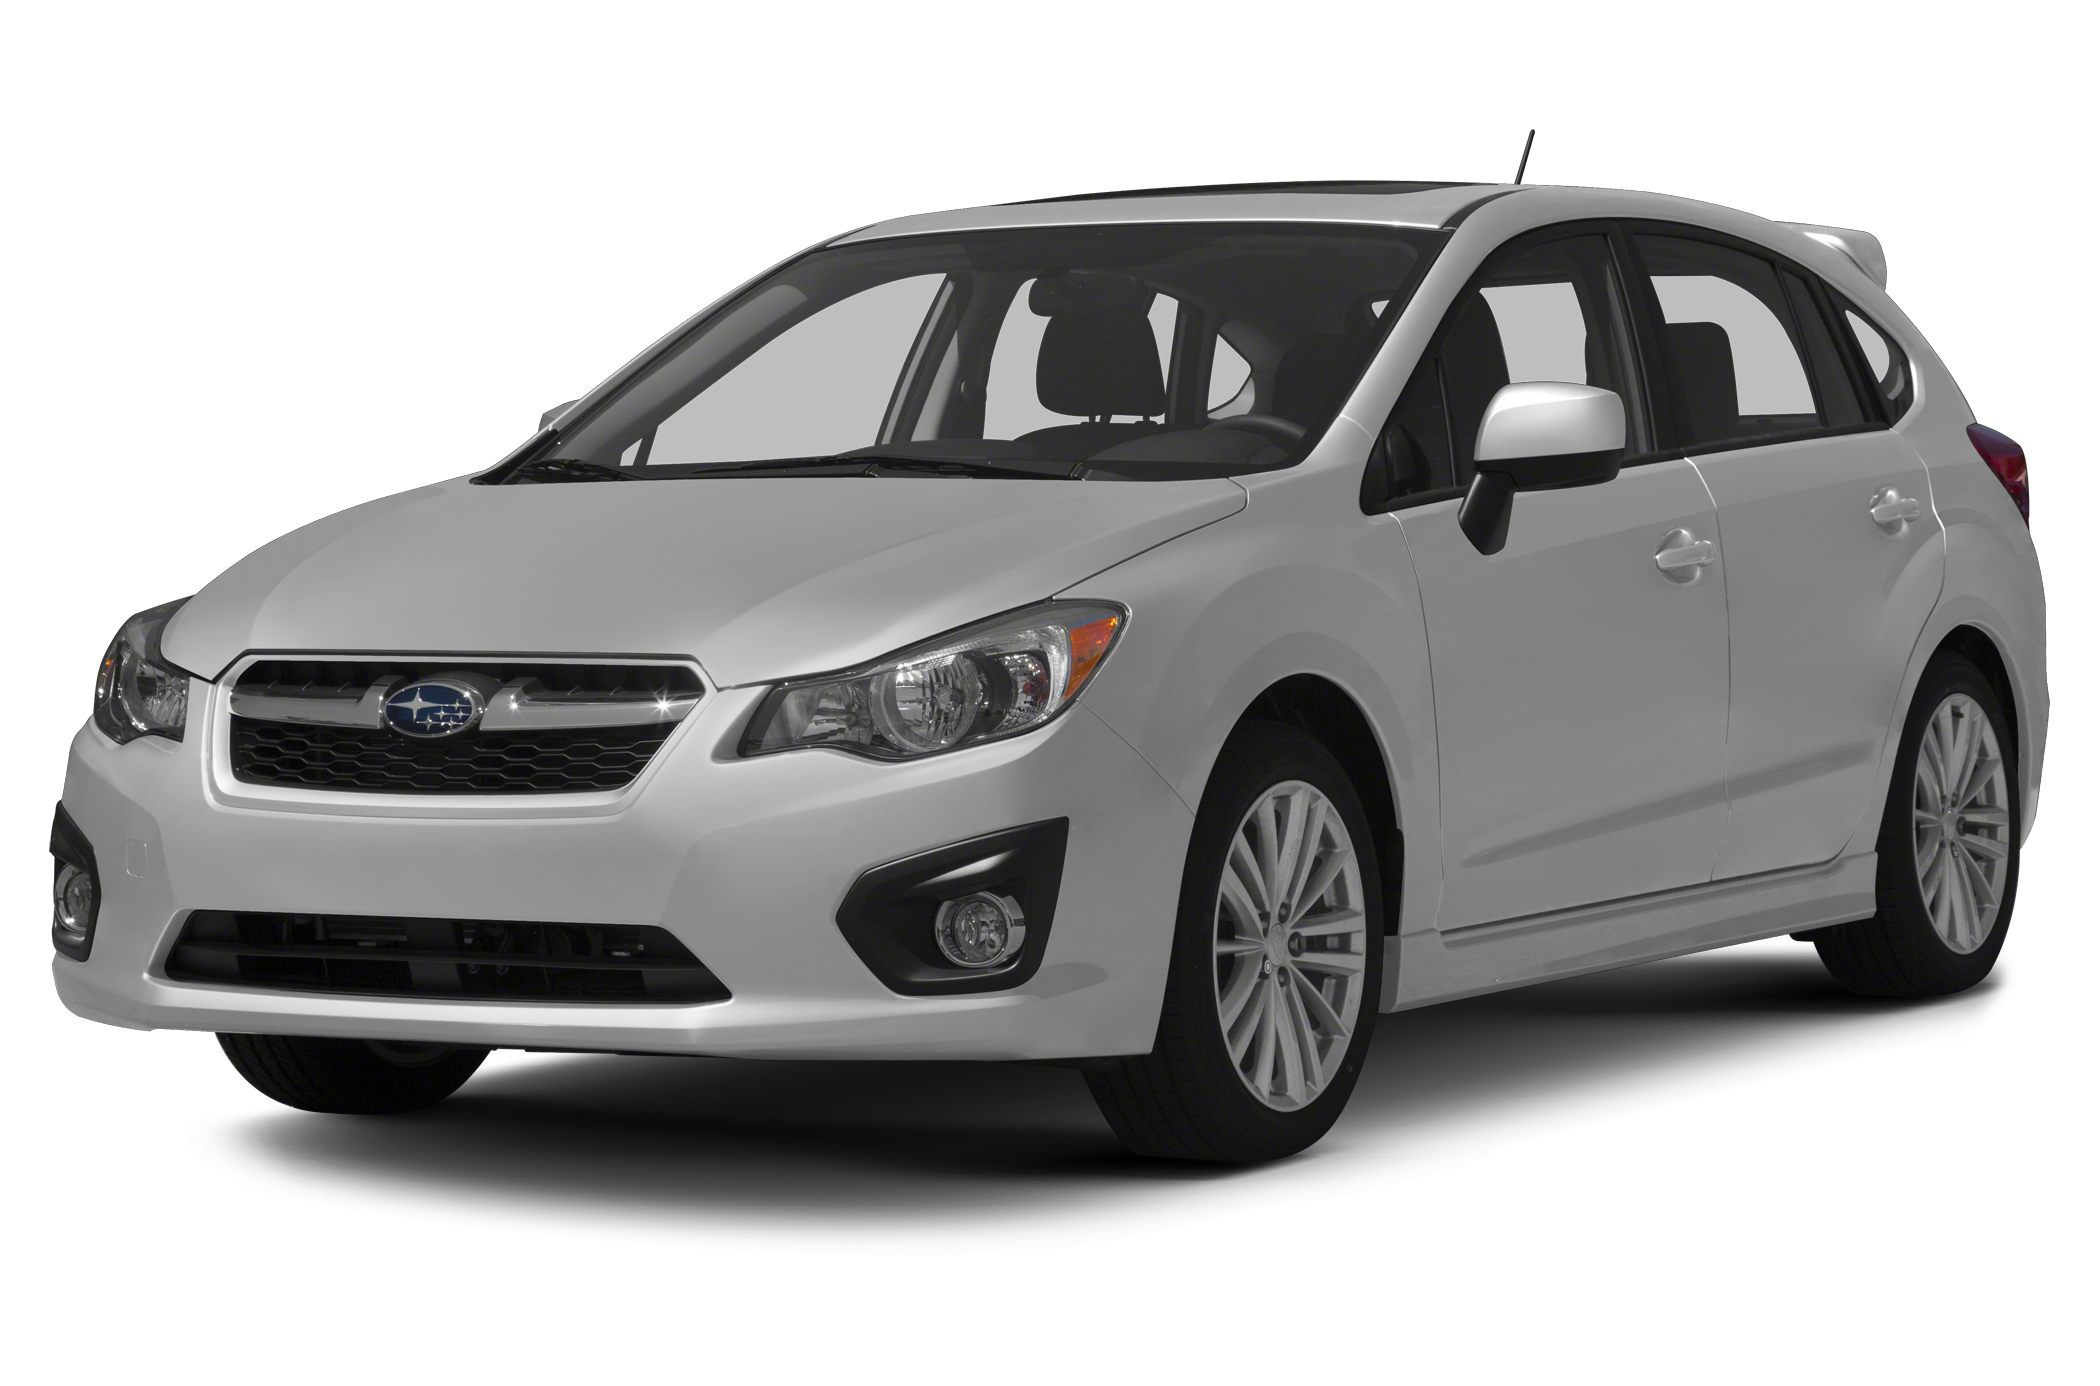 2013 Subaru Impreza 2.0i Sport Premium Hatchback for sale in Bangor for $19,998 with 22,215 miles.